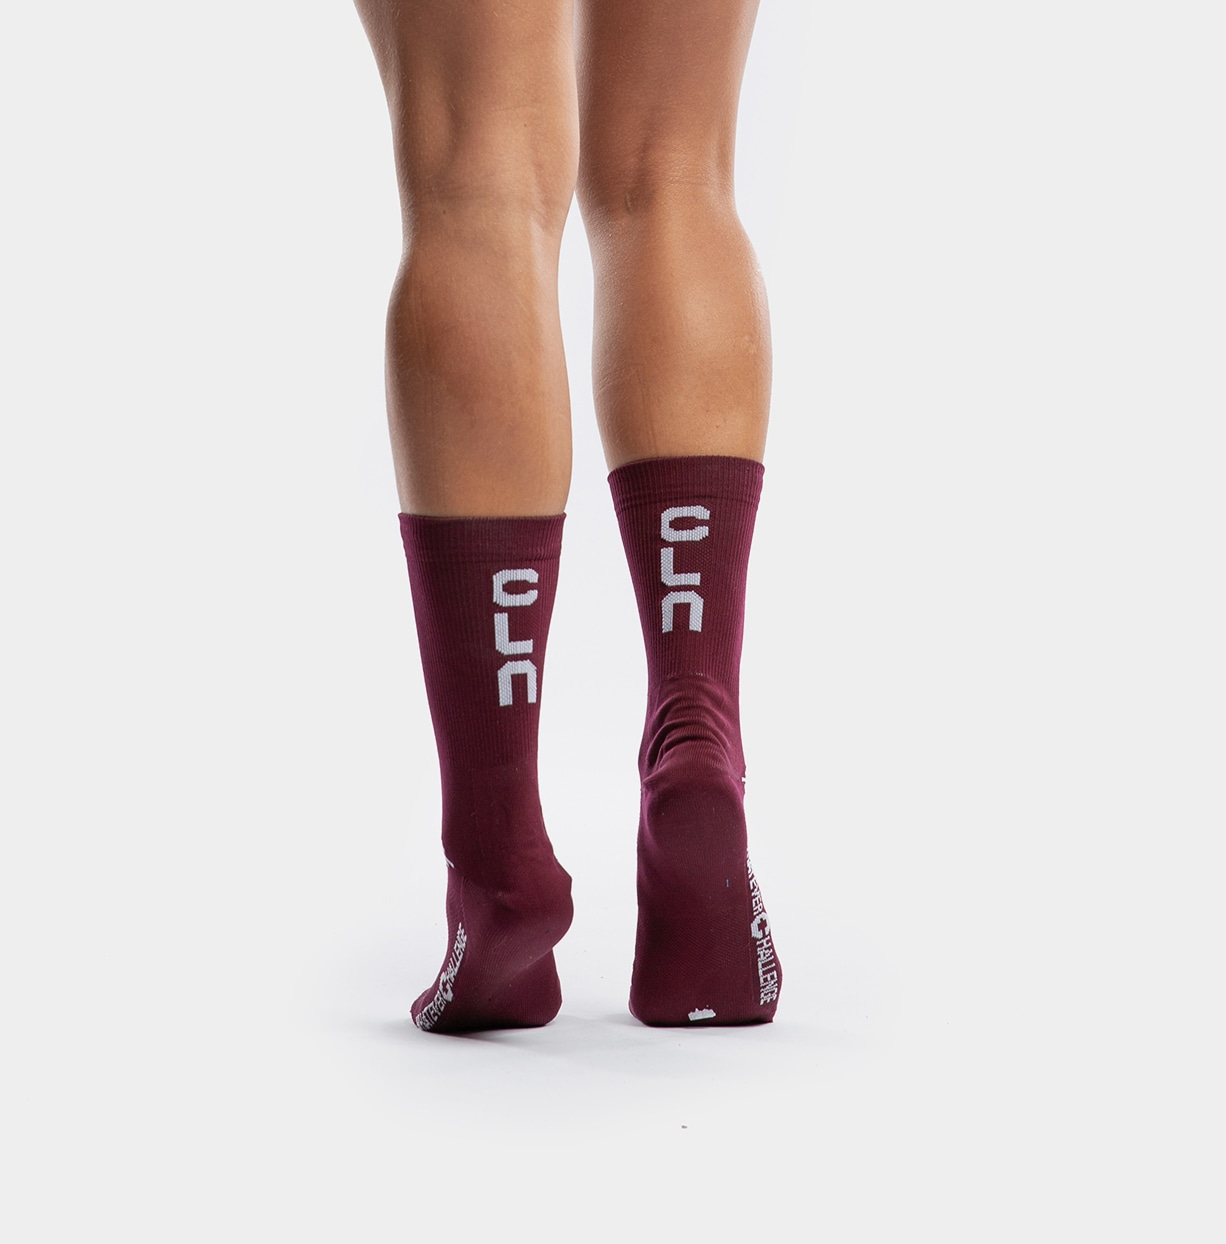 CLN Vision Socks Burgundy